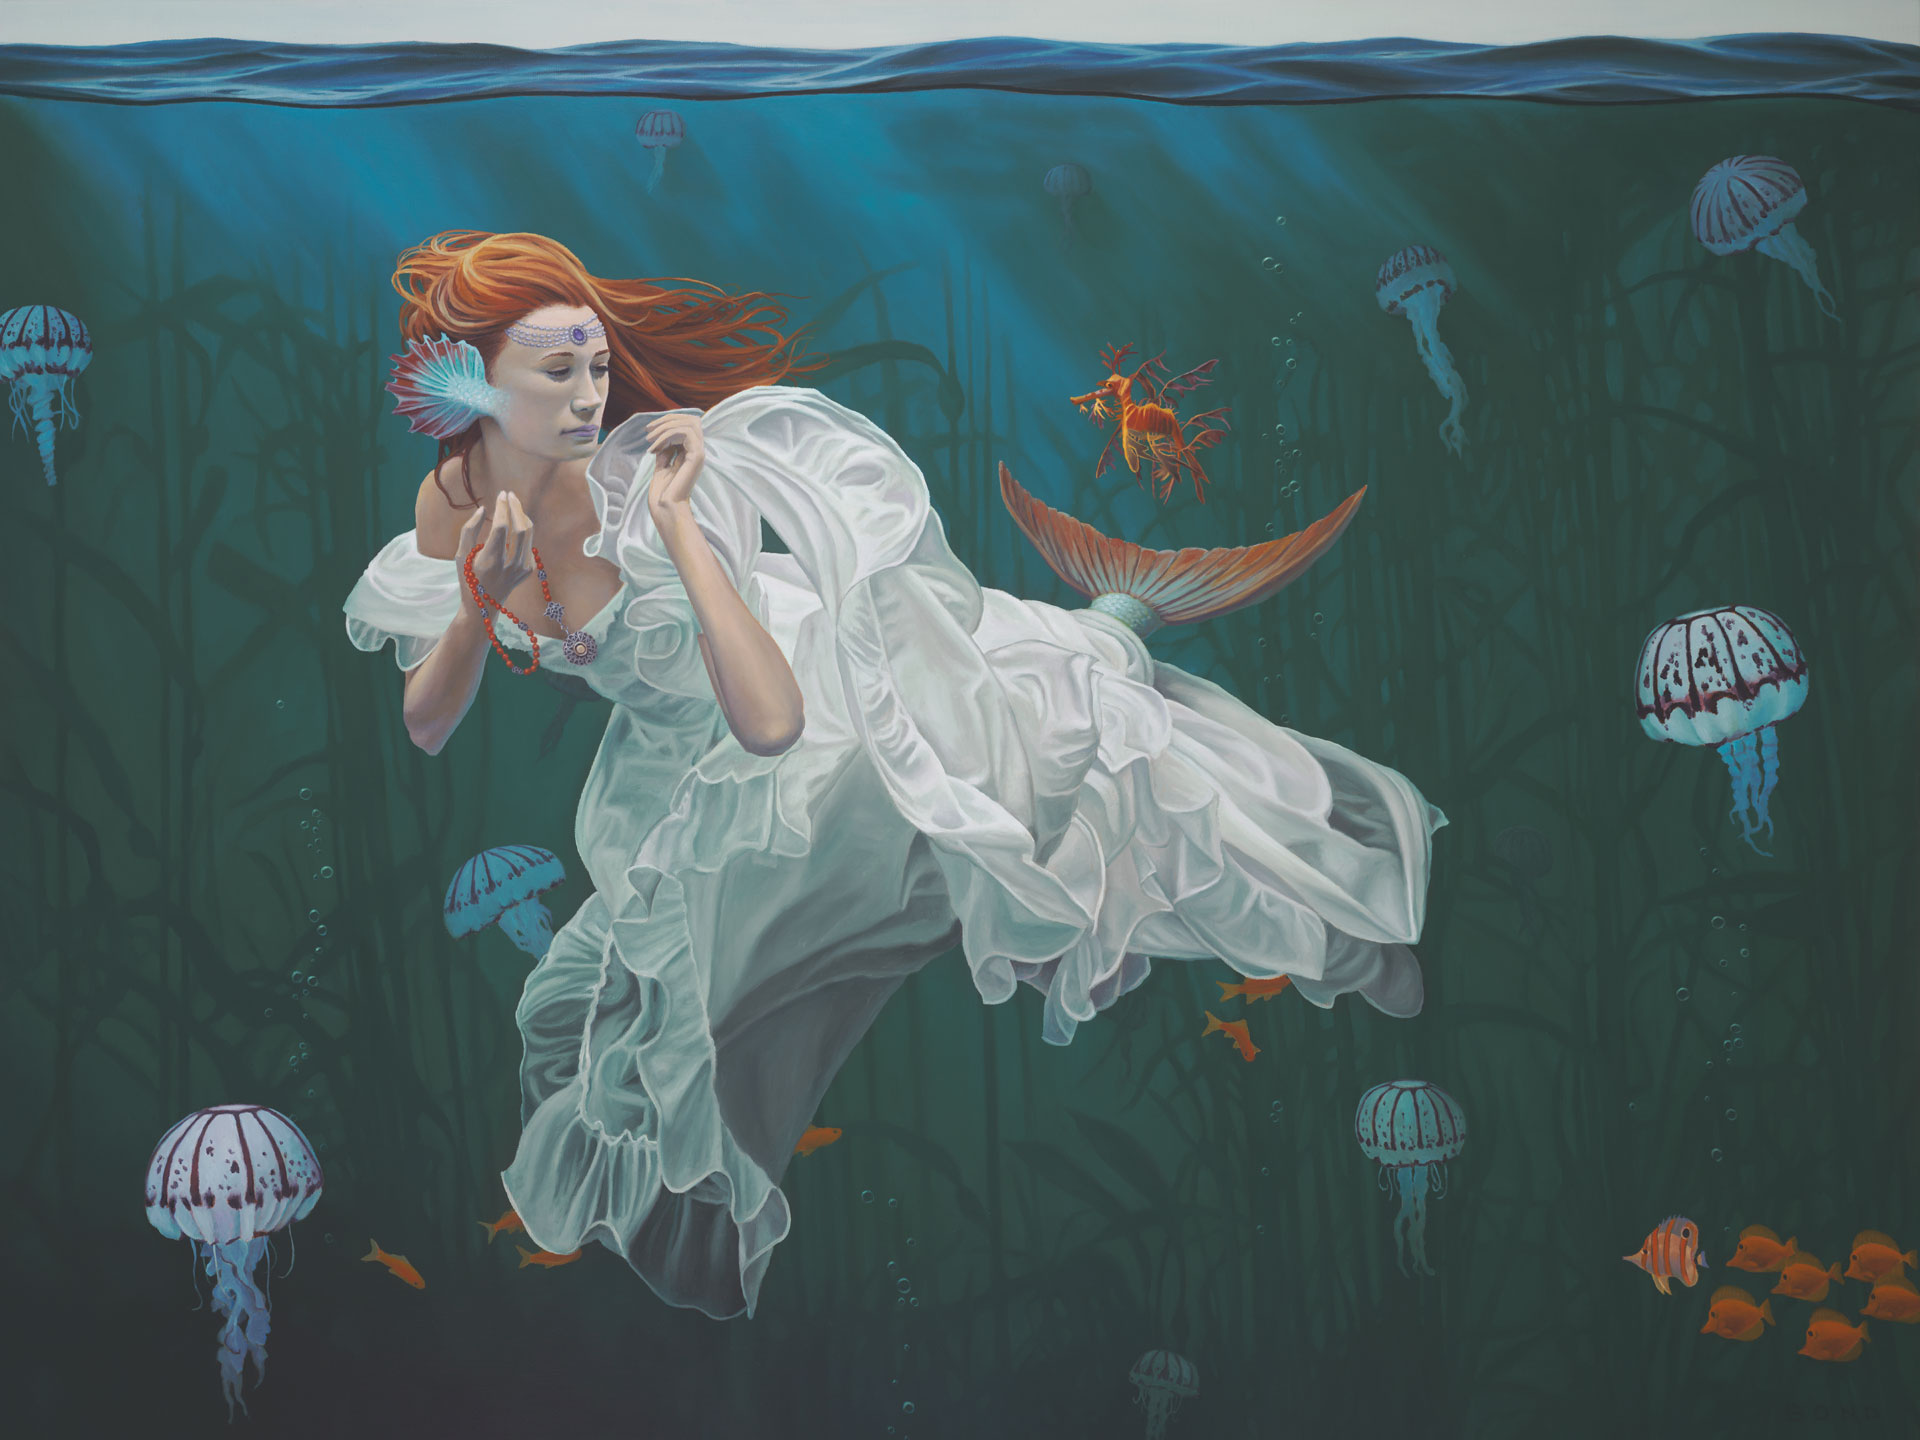 Princess and the Dragon, painting of a mermaid with a leafy sea dragon and purple jellyfish, art with girl as mermaid, picture of woman under water in white flowy dress, art with kelp forest, painting with sea dragon and jellyfish, lady with a fin underwater, soulful uplifting inspirational art, soul stirring illusion art, romantic art,  surrealism, surreal art, dreamlike imagery, fanciful art, fantasy art, dreamscape visual, metaphysical art, spiritual painting, metaphysical painting, spiritual art, whimsical art, whimsy art, dream art, fantastic realism art, magic realism oil painting by Paul Bond